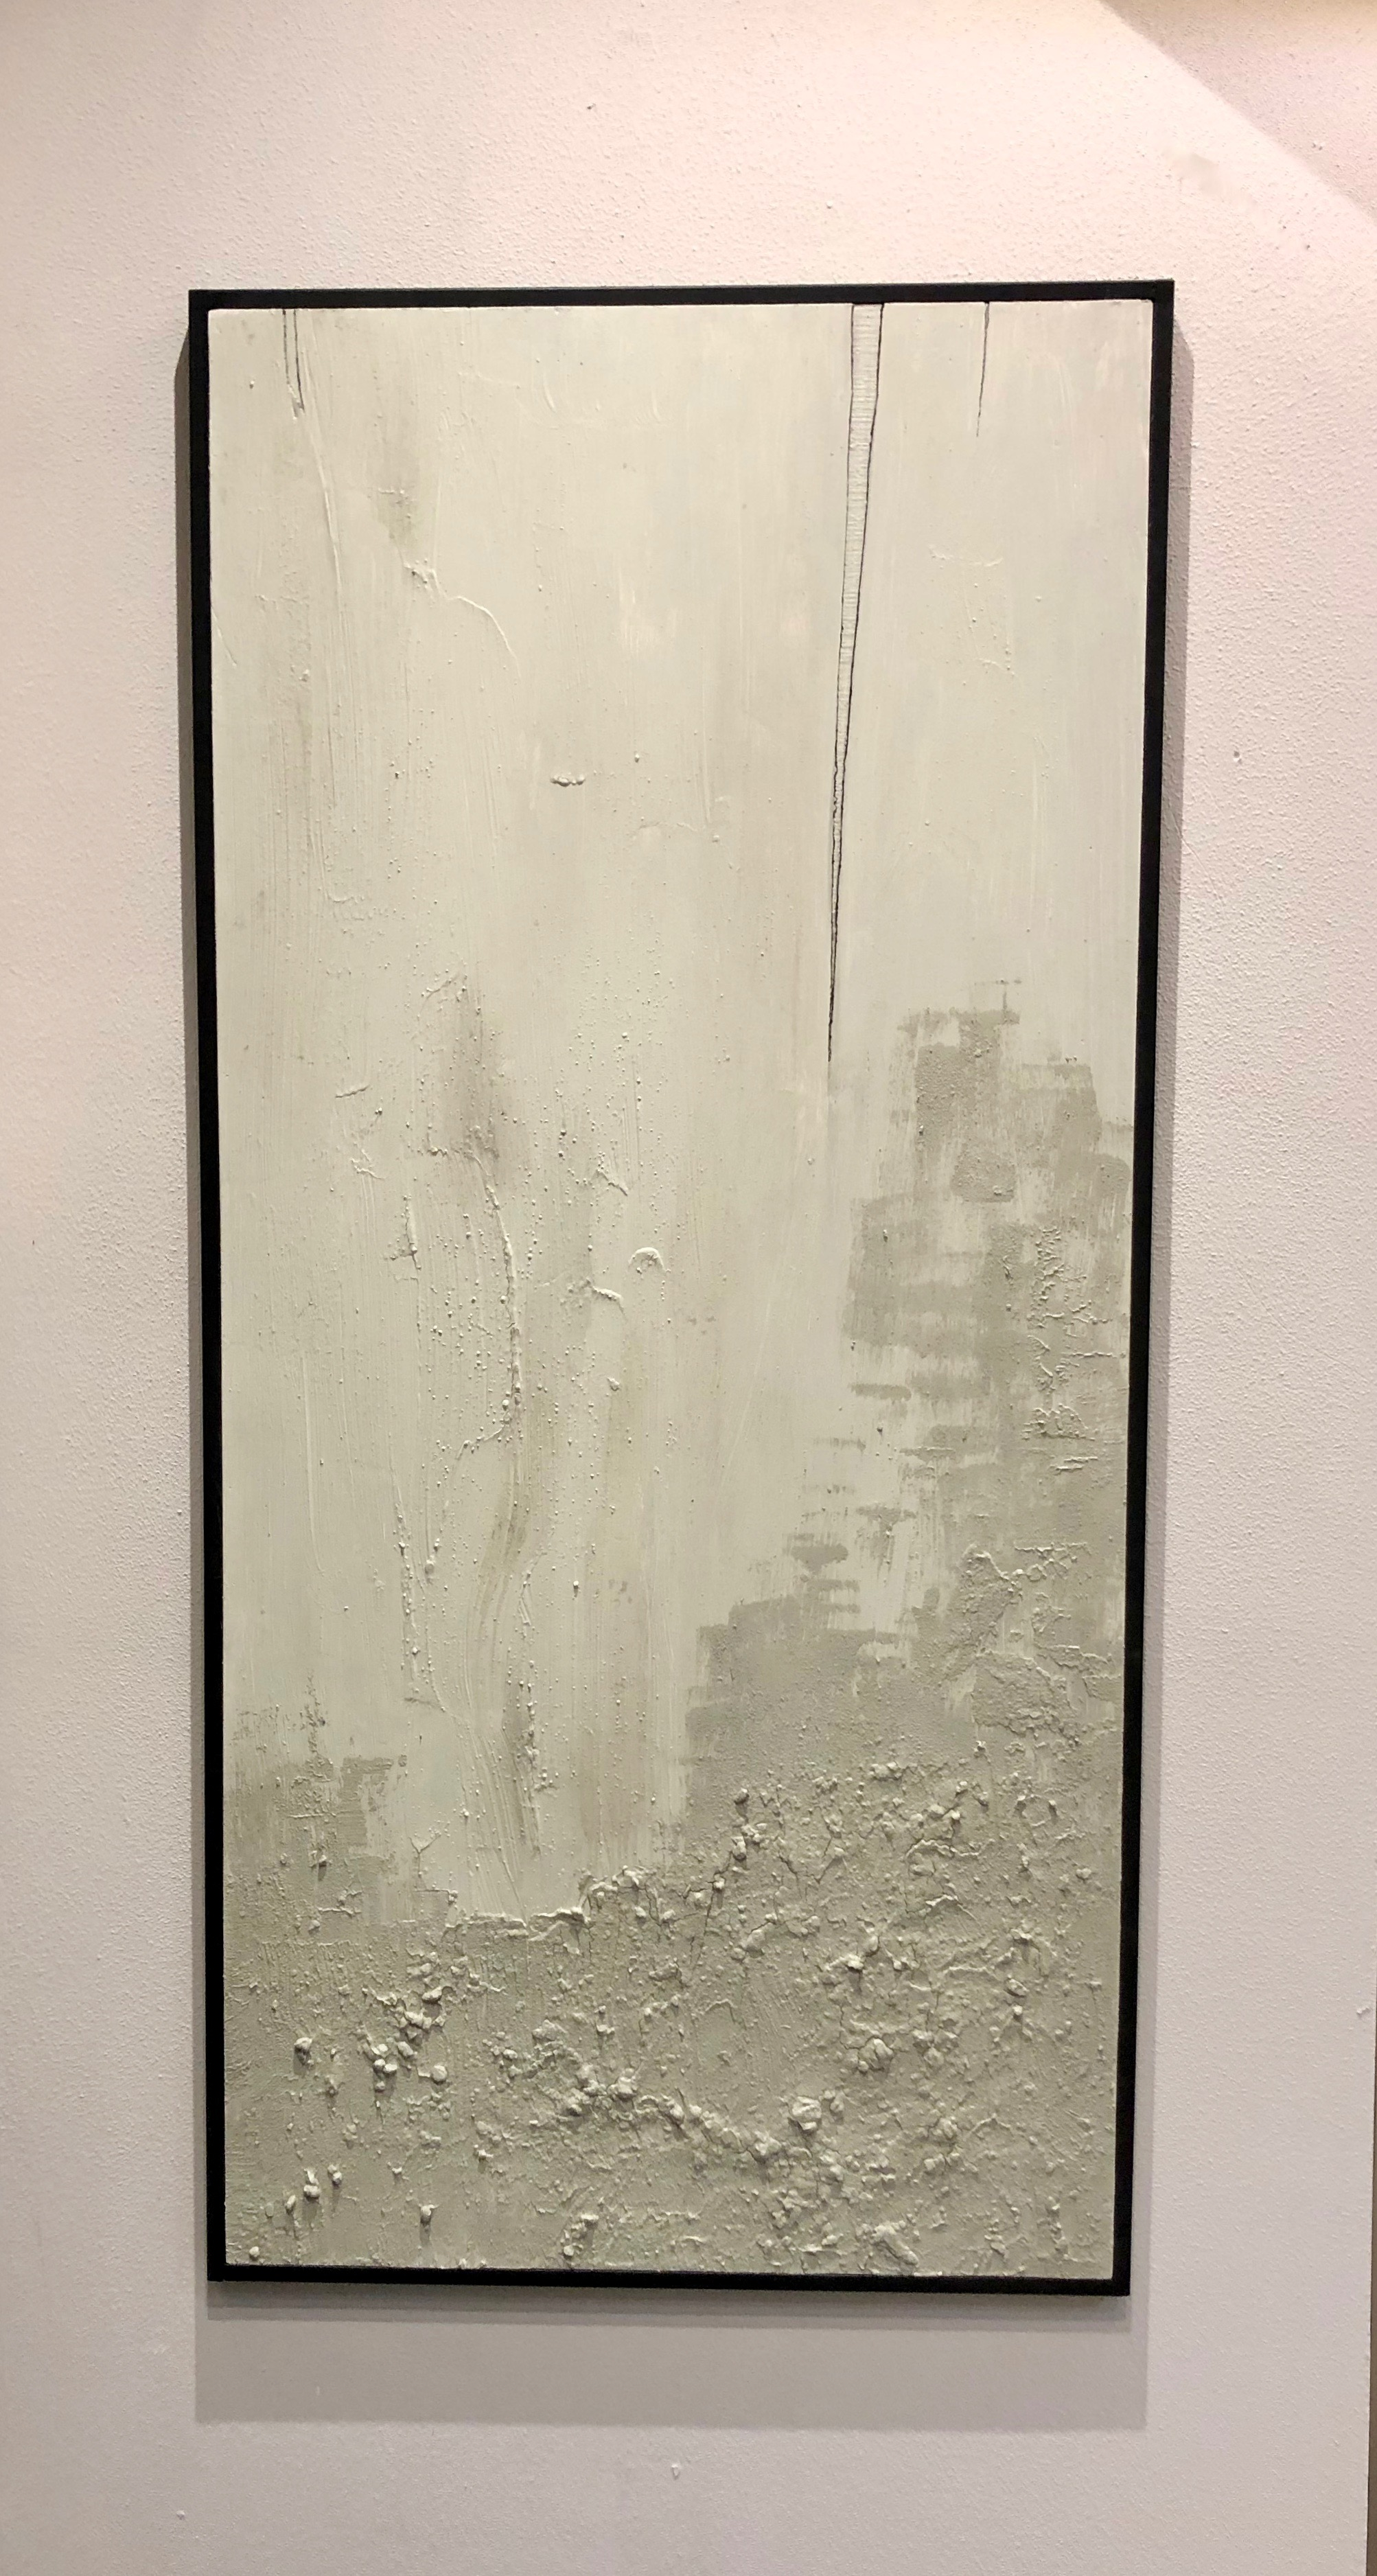 OPEN WOUNDS - Mixed media on 5mm plywood, 70x150cm, framed - AVAILABLE